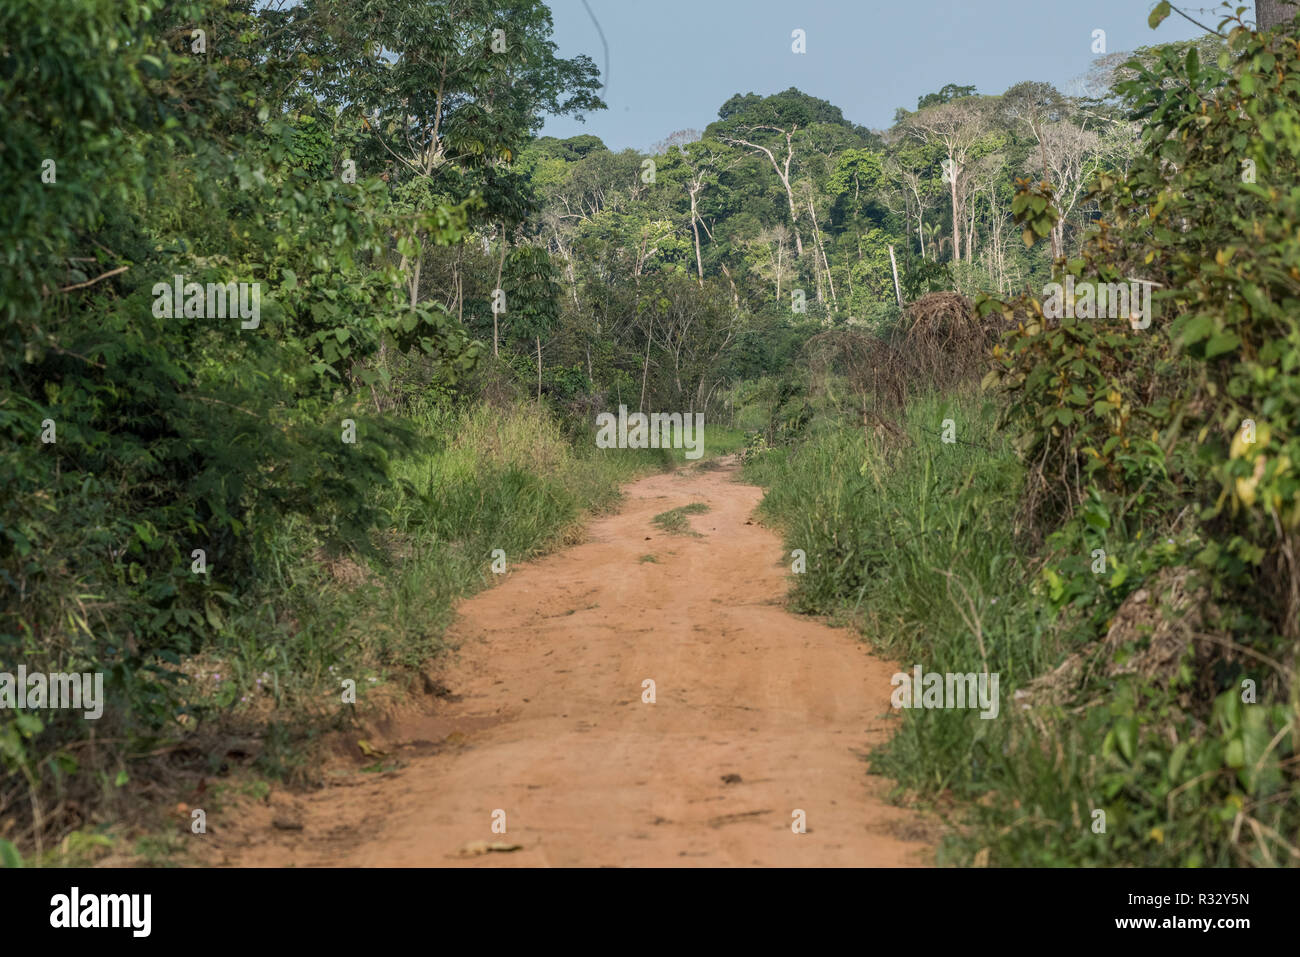 A road leading through secondary forest in Madre de Dios, Peru. - Stock Image